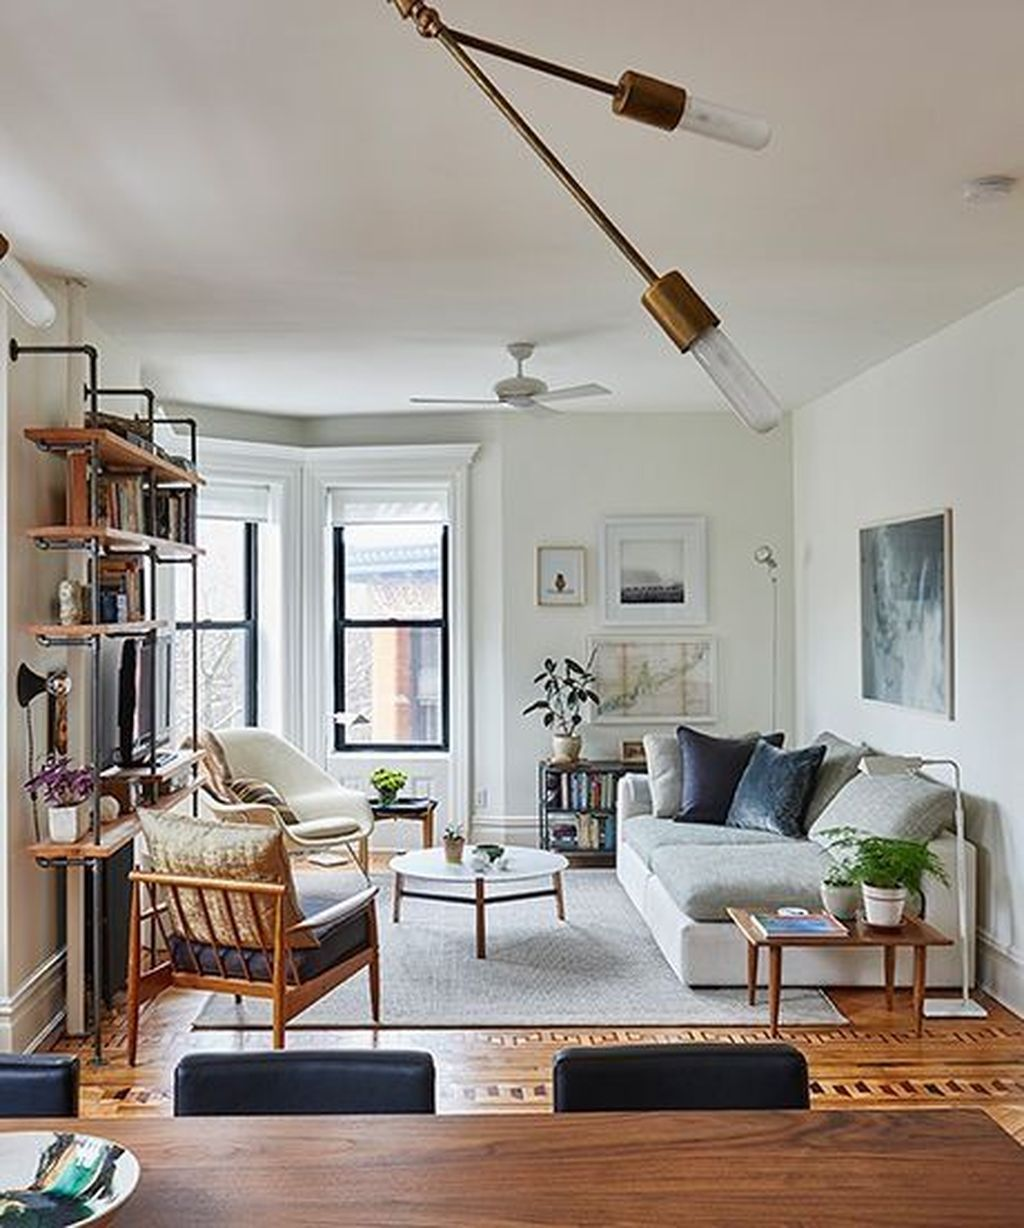 Small Living Roomdesign Ideas: Pin By Trista Anderson On Interior Design